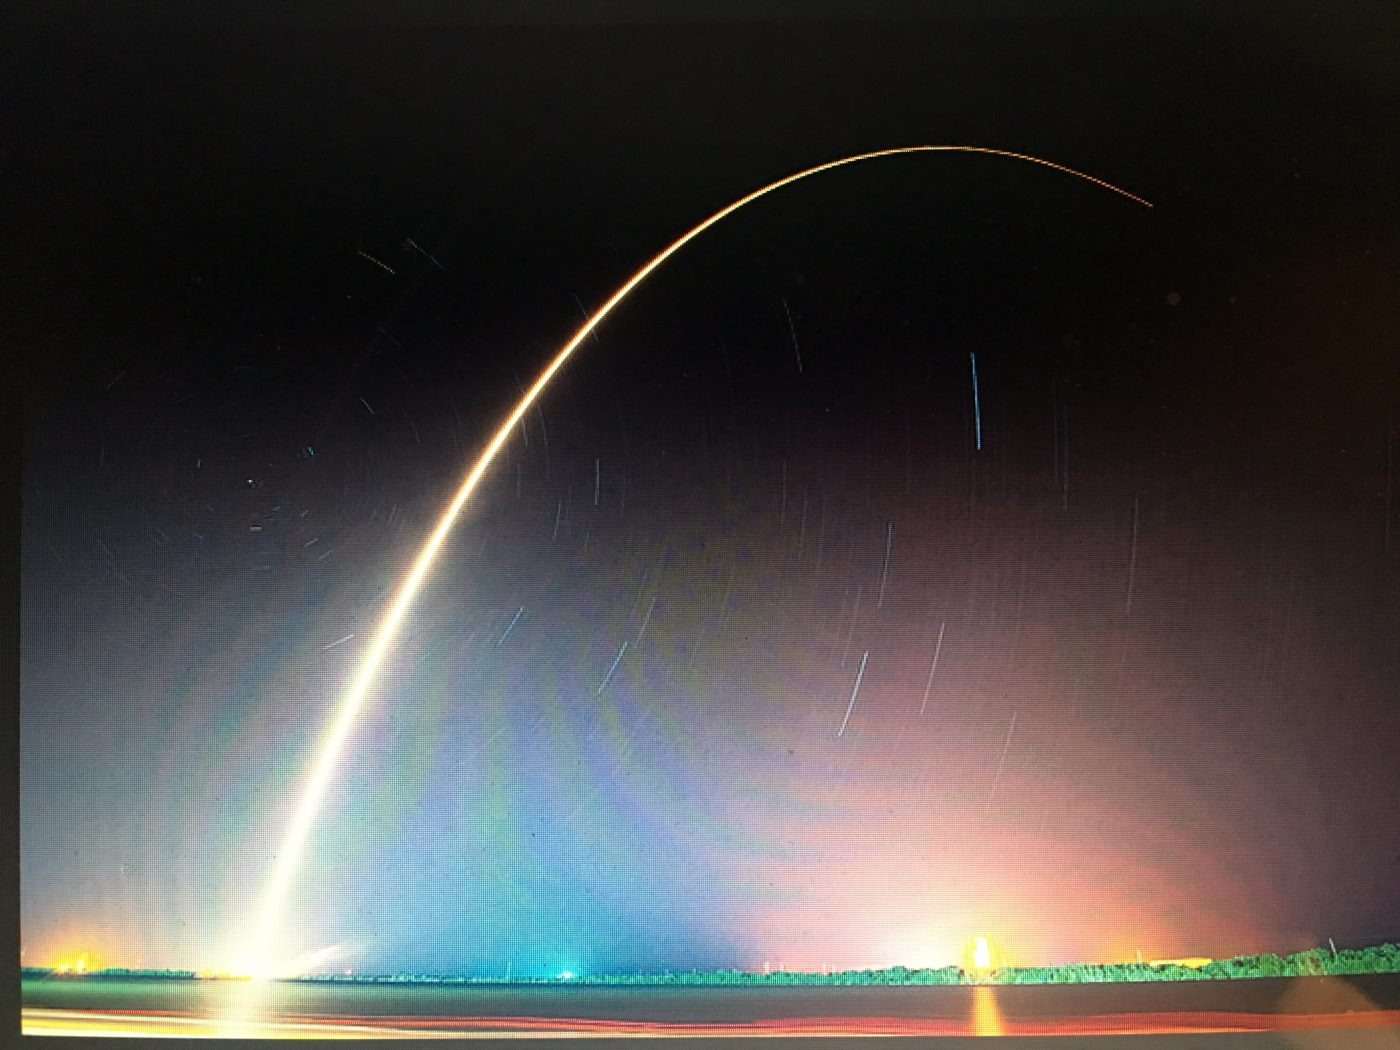 The Launch (credit: SpaceX)